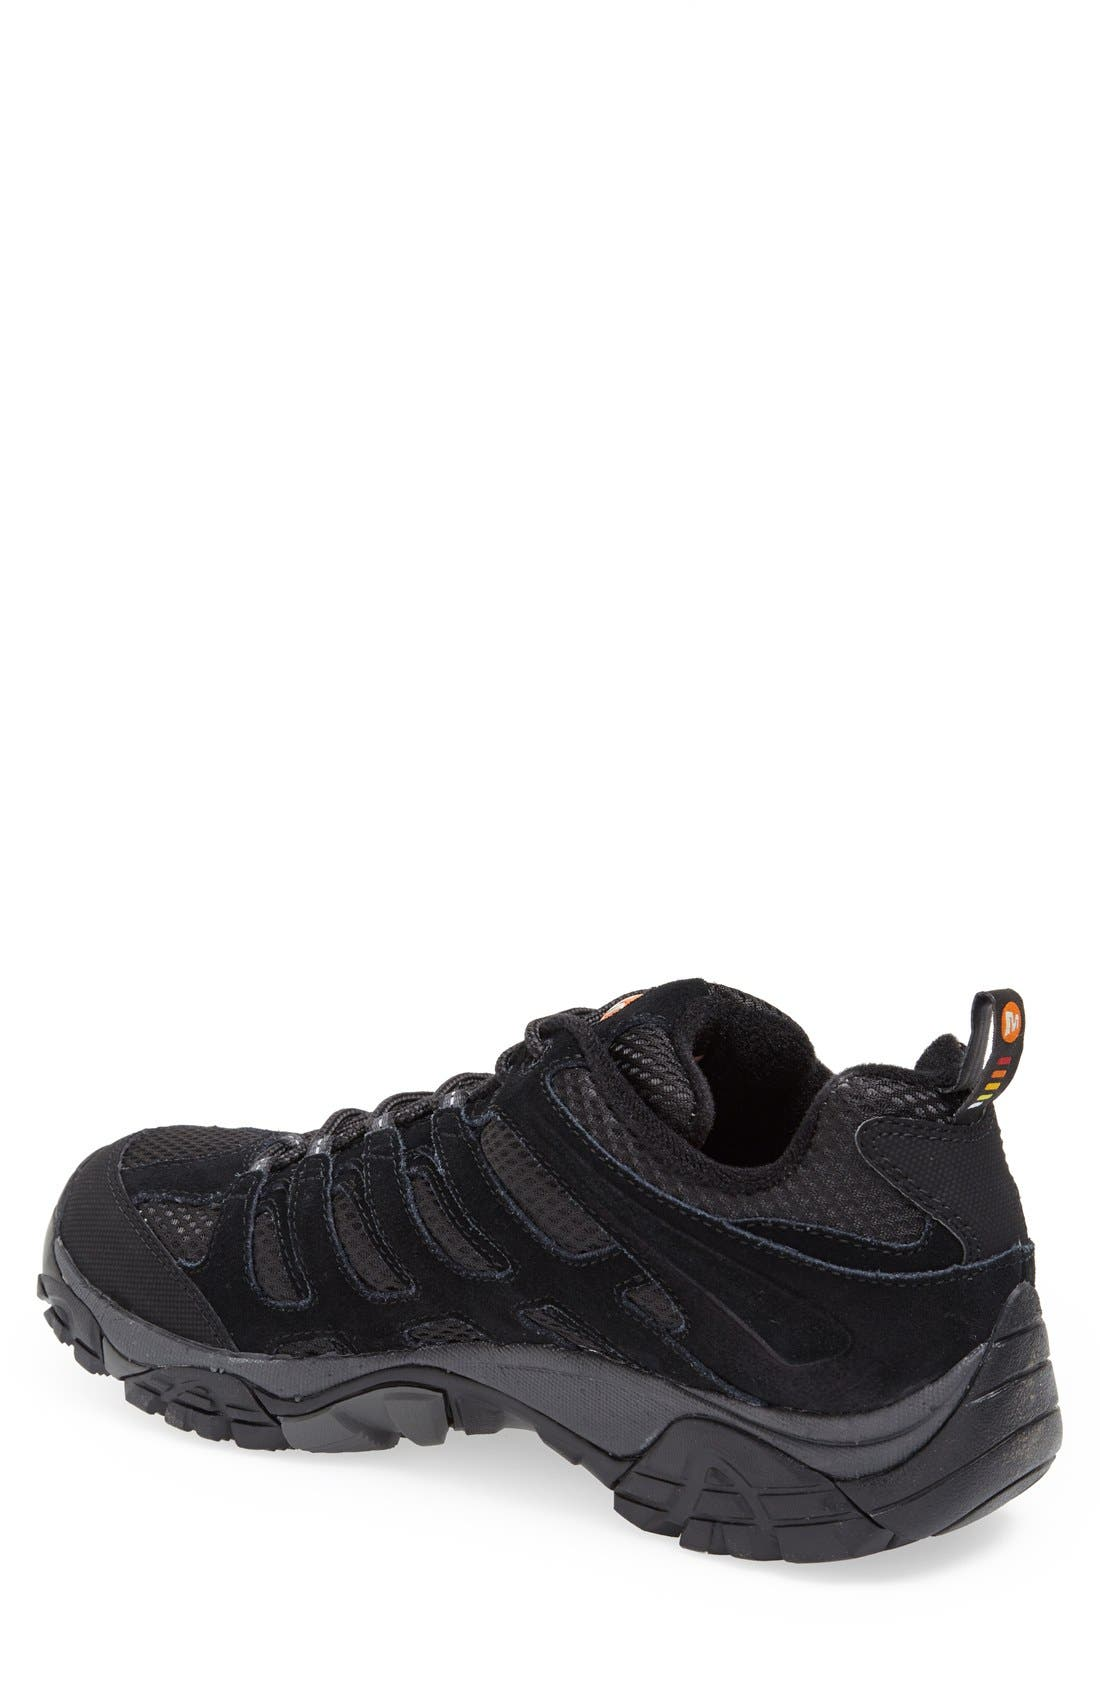 Alternate Image 2  - Merrell 'Moab Ventilator' Hiking Shoe (Men)